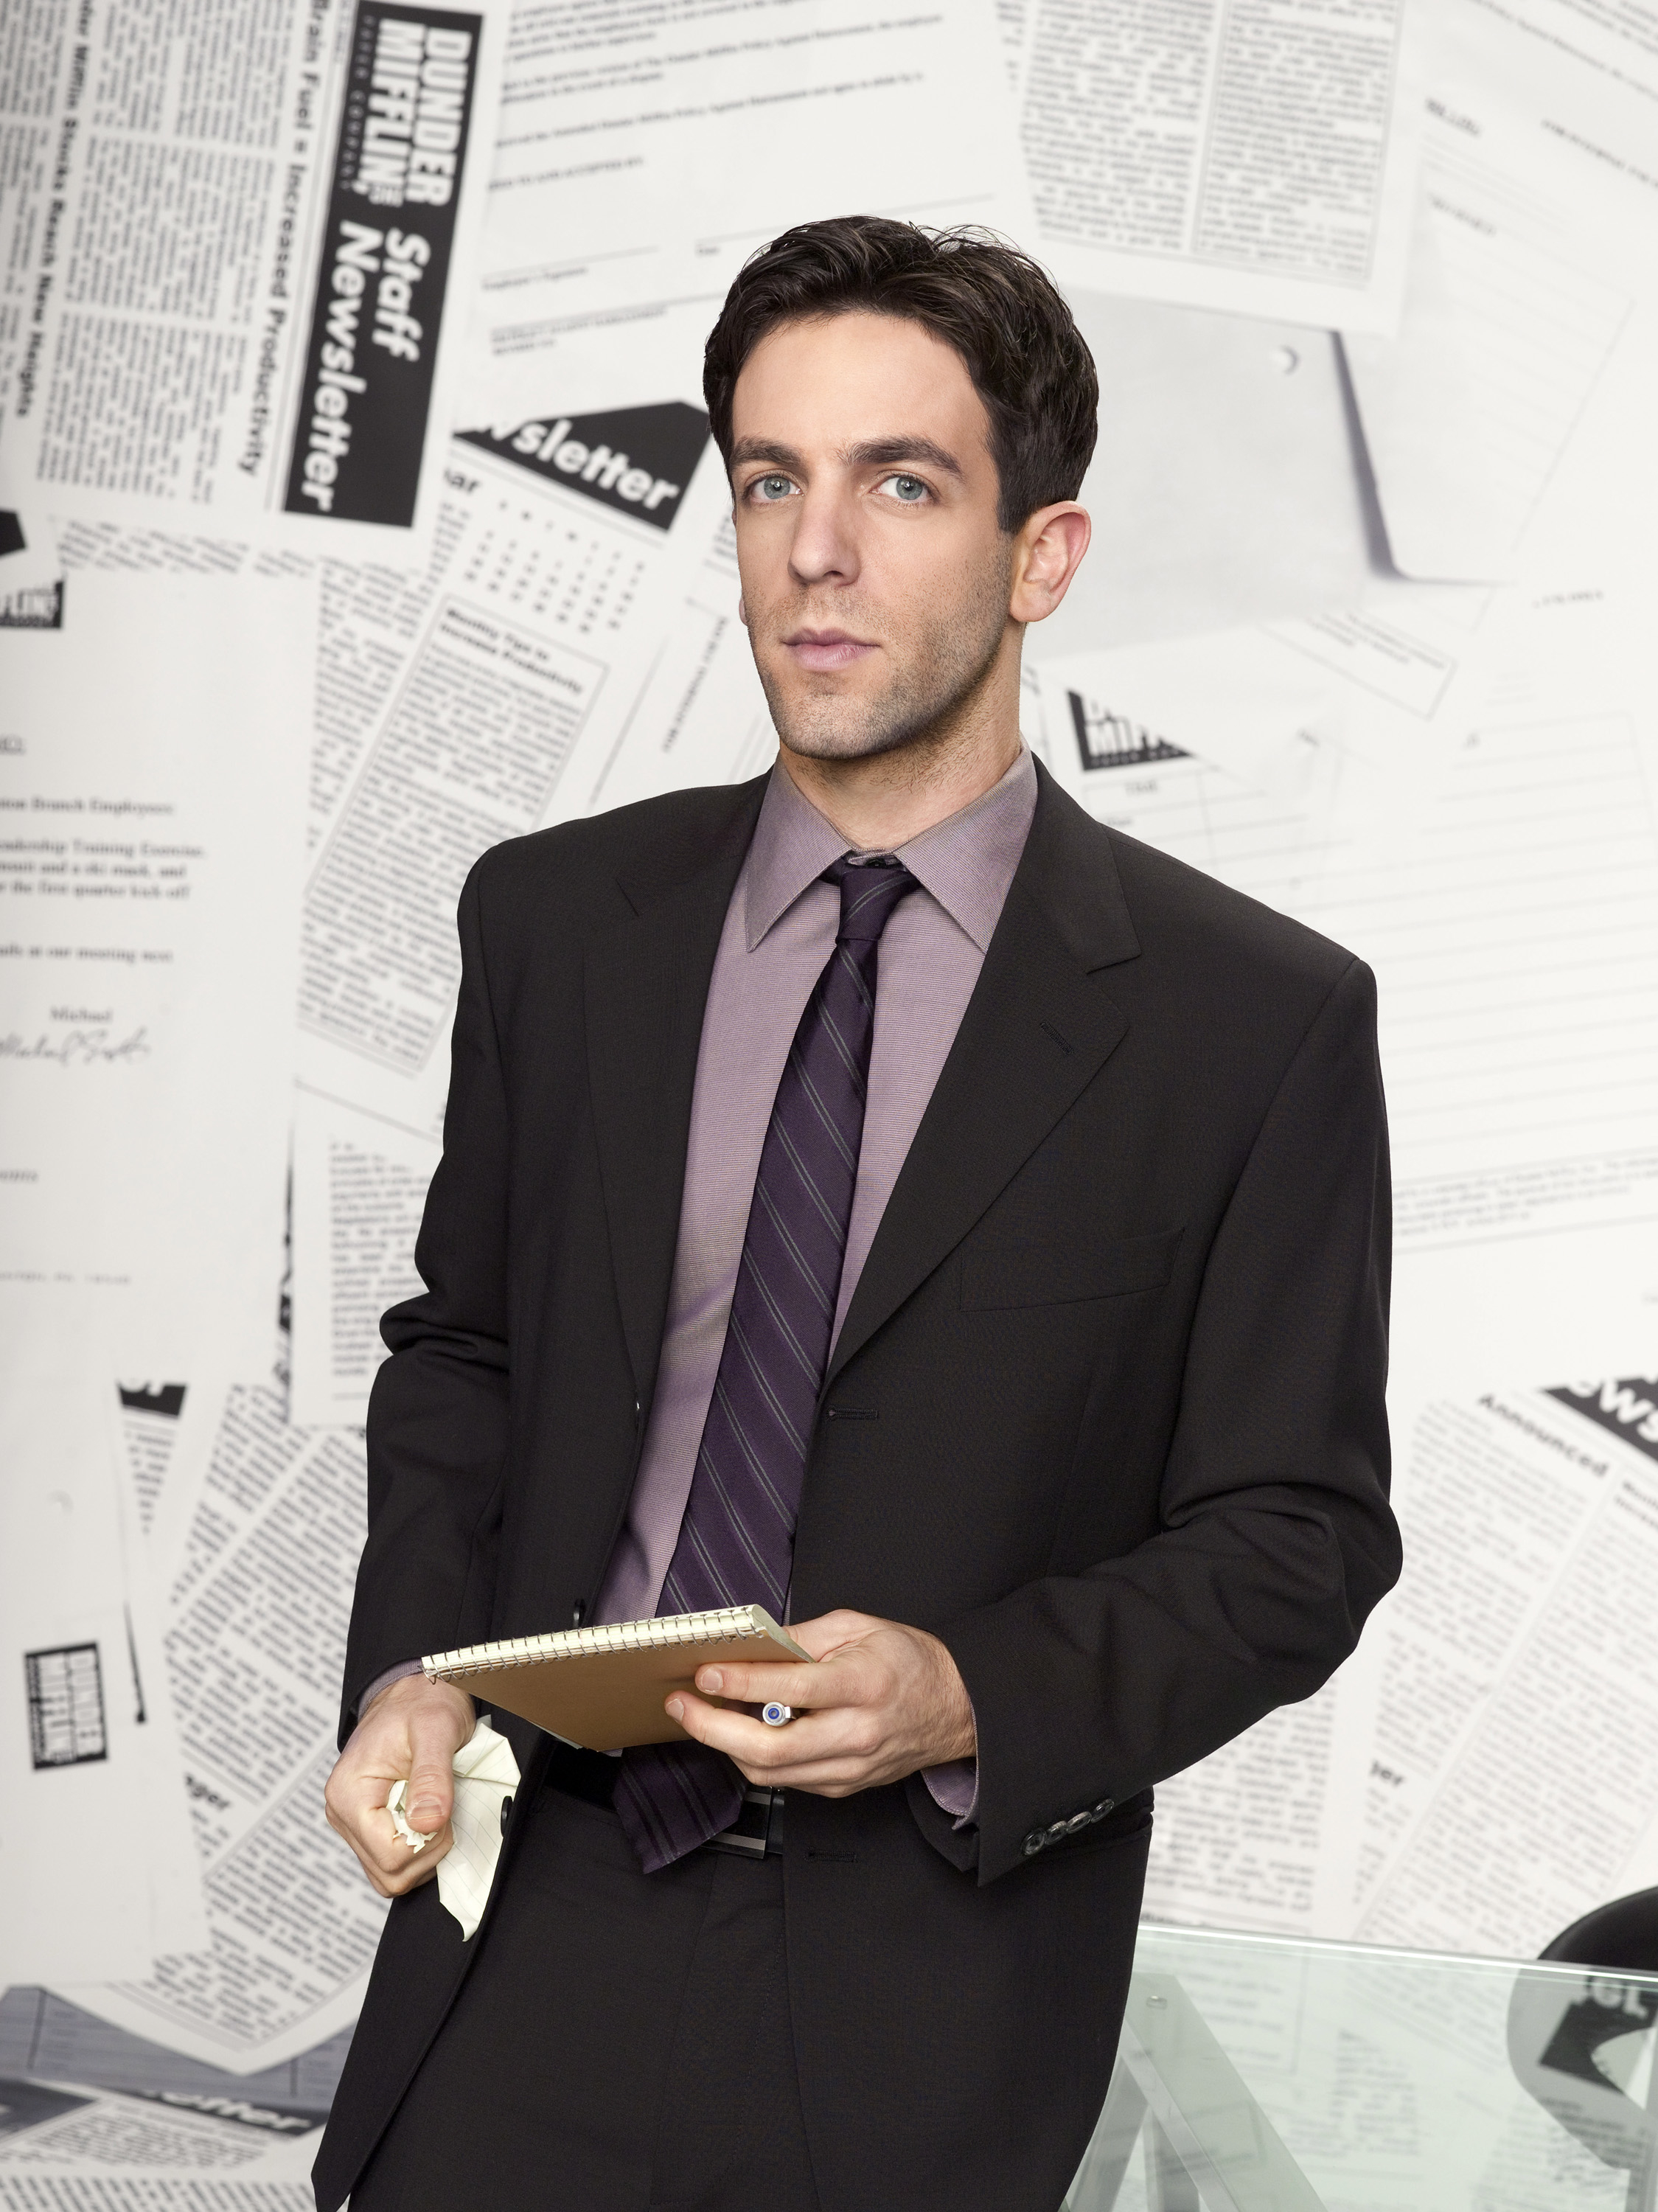 Tickets For B J Novak Comedy Show At Umbc In Baltimore